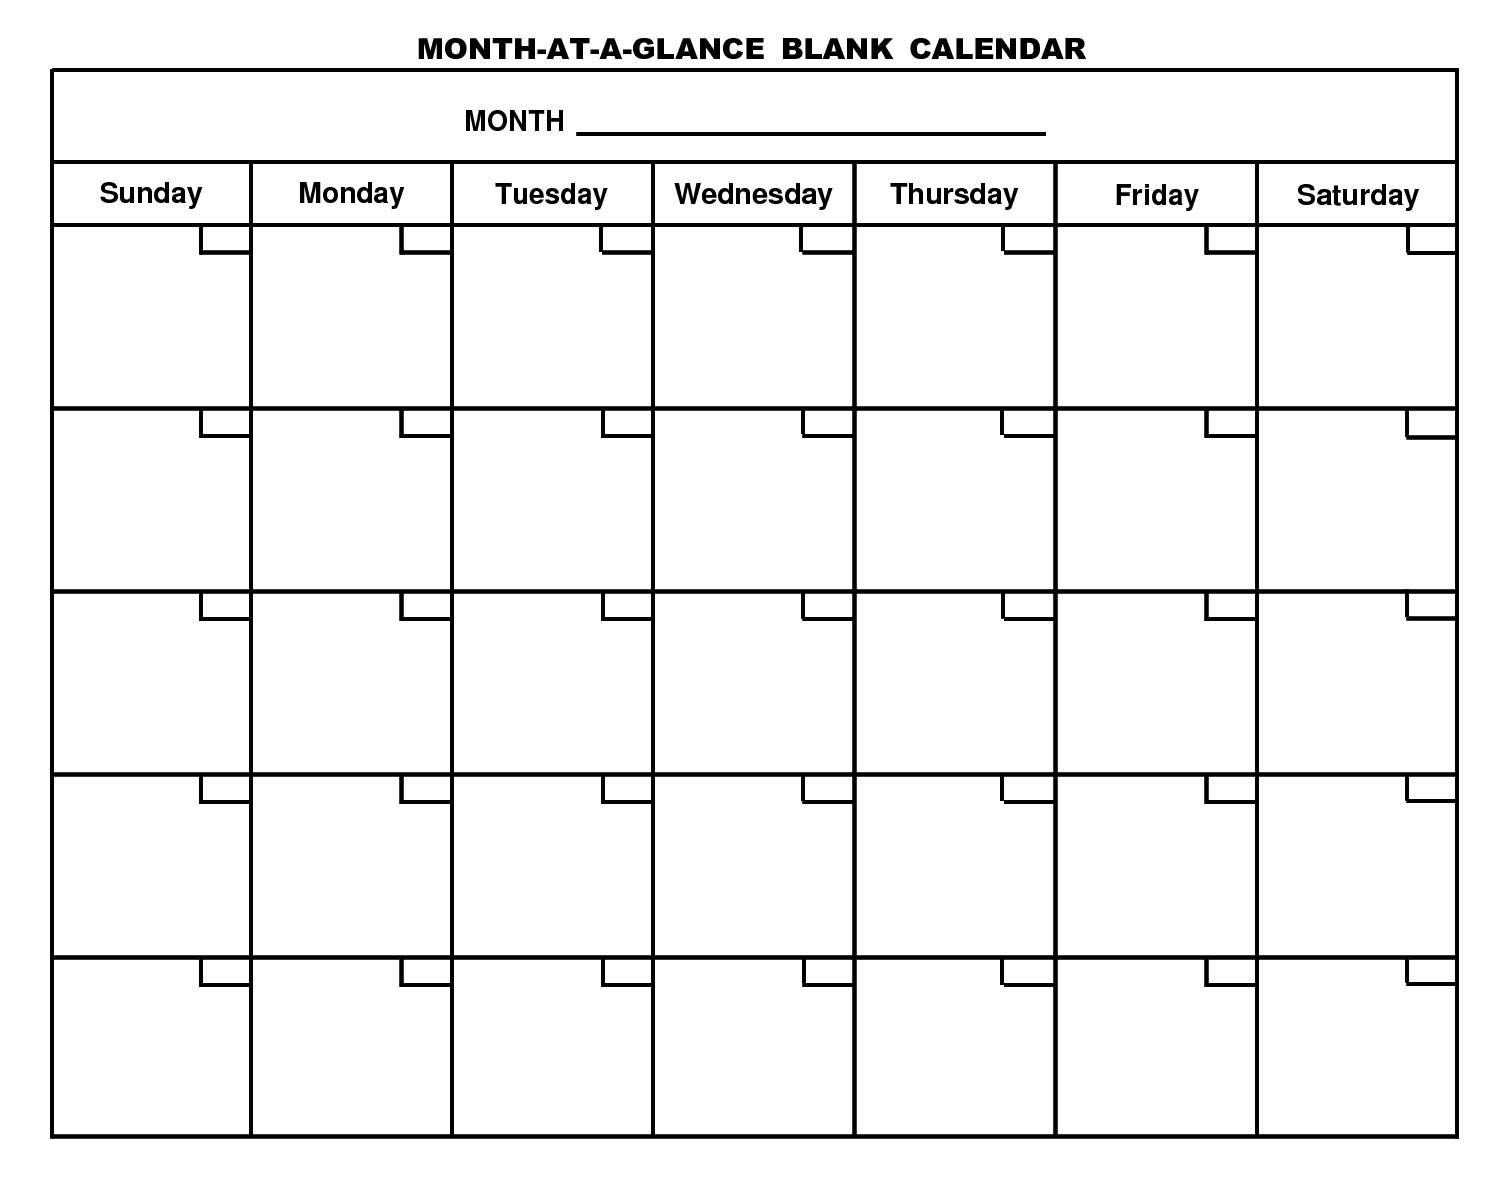 Pinstacy Tangren On Work   Blank Calendar Pages, Free With Regard To Month At A Glance Blank Calendar Template